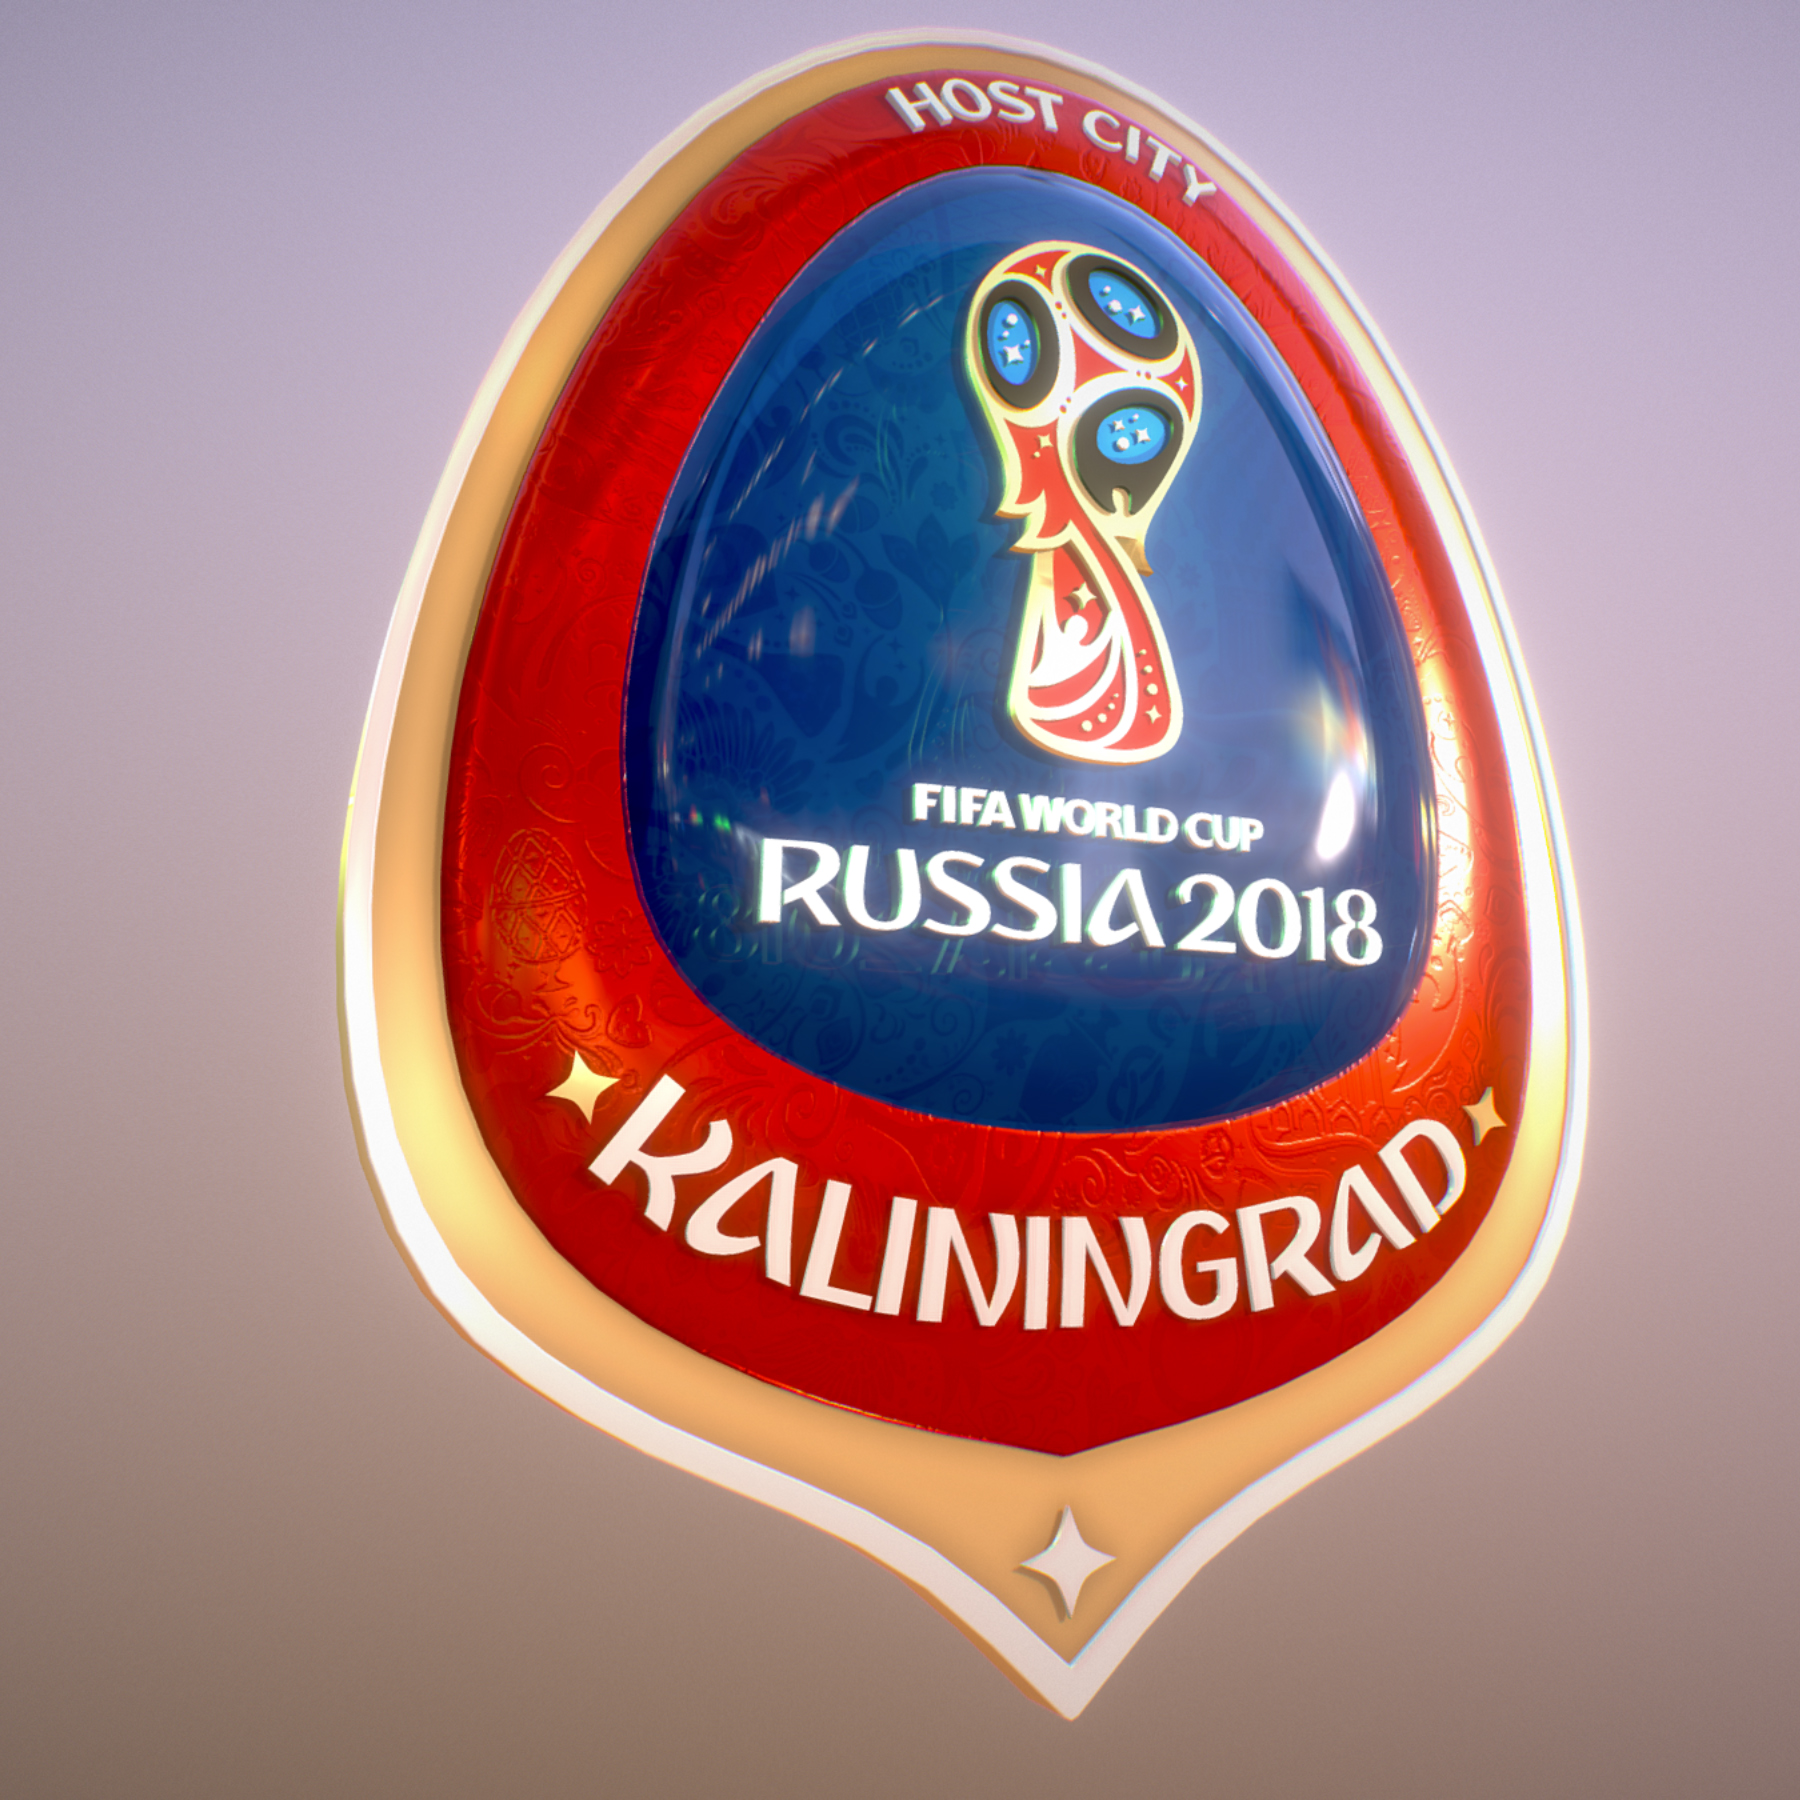 kaliningrad city world cup Rusija 2018 simbol 3d model max fbx jpeg jpg ma mb obj 271748